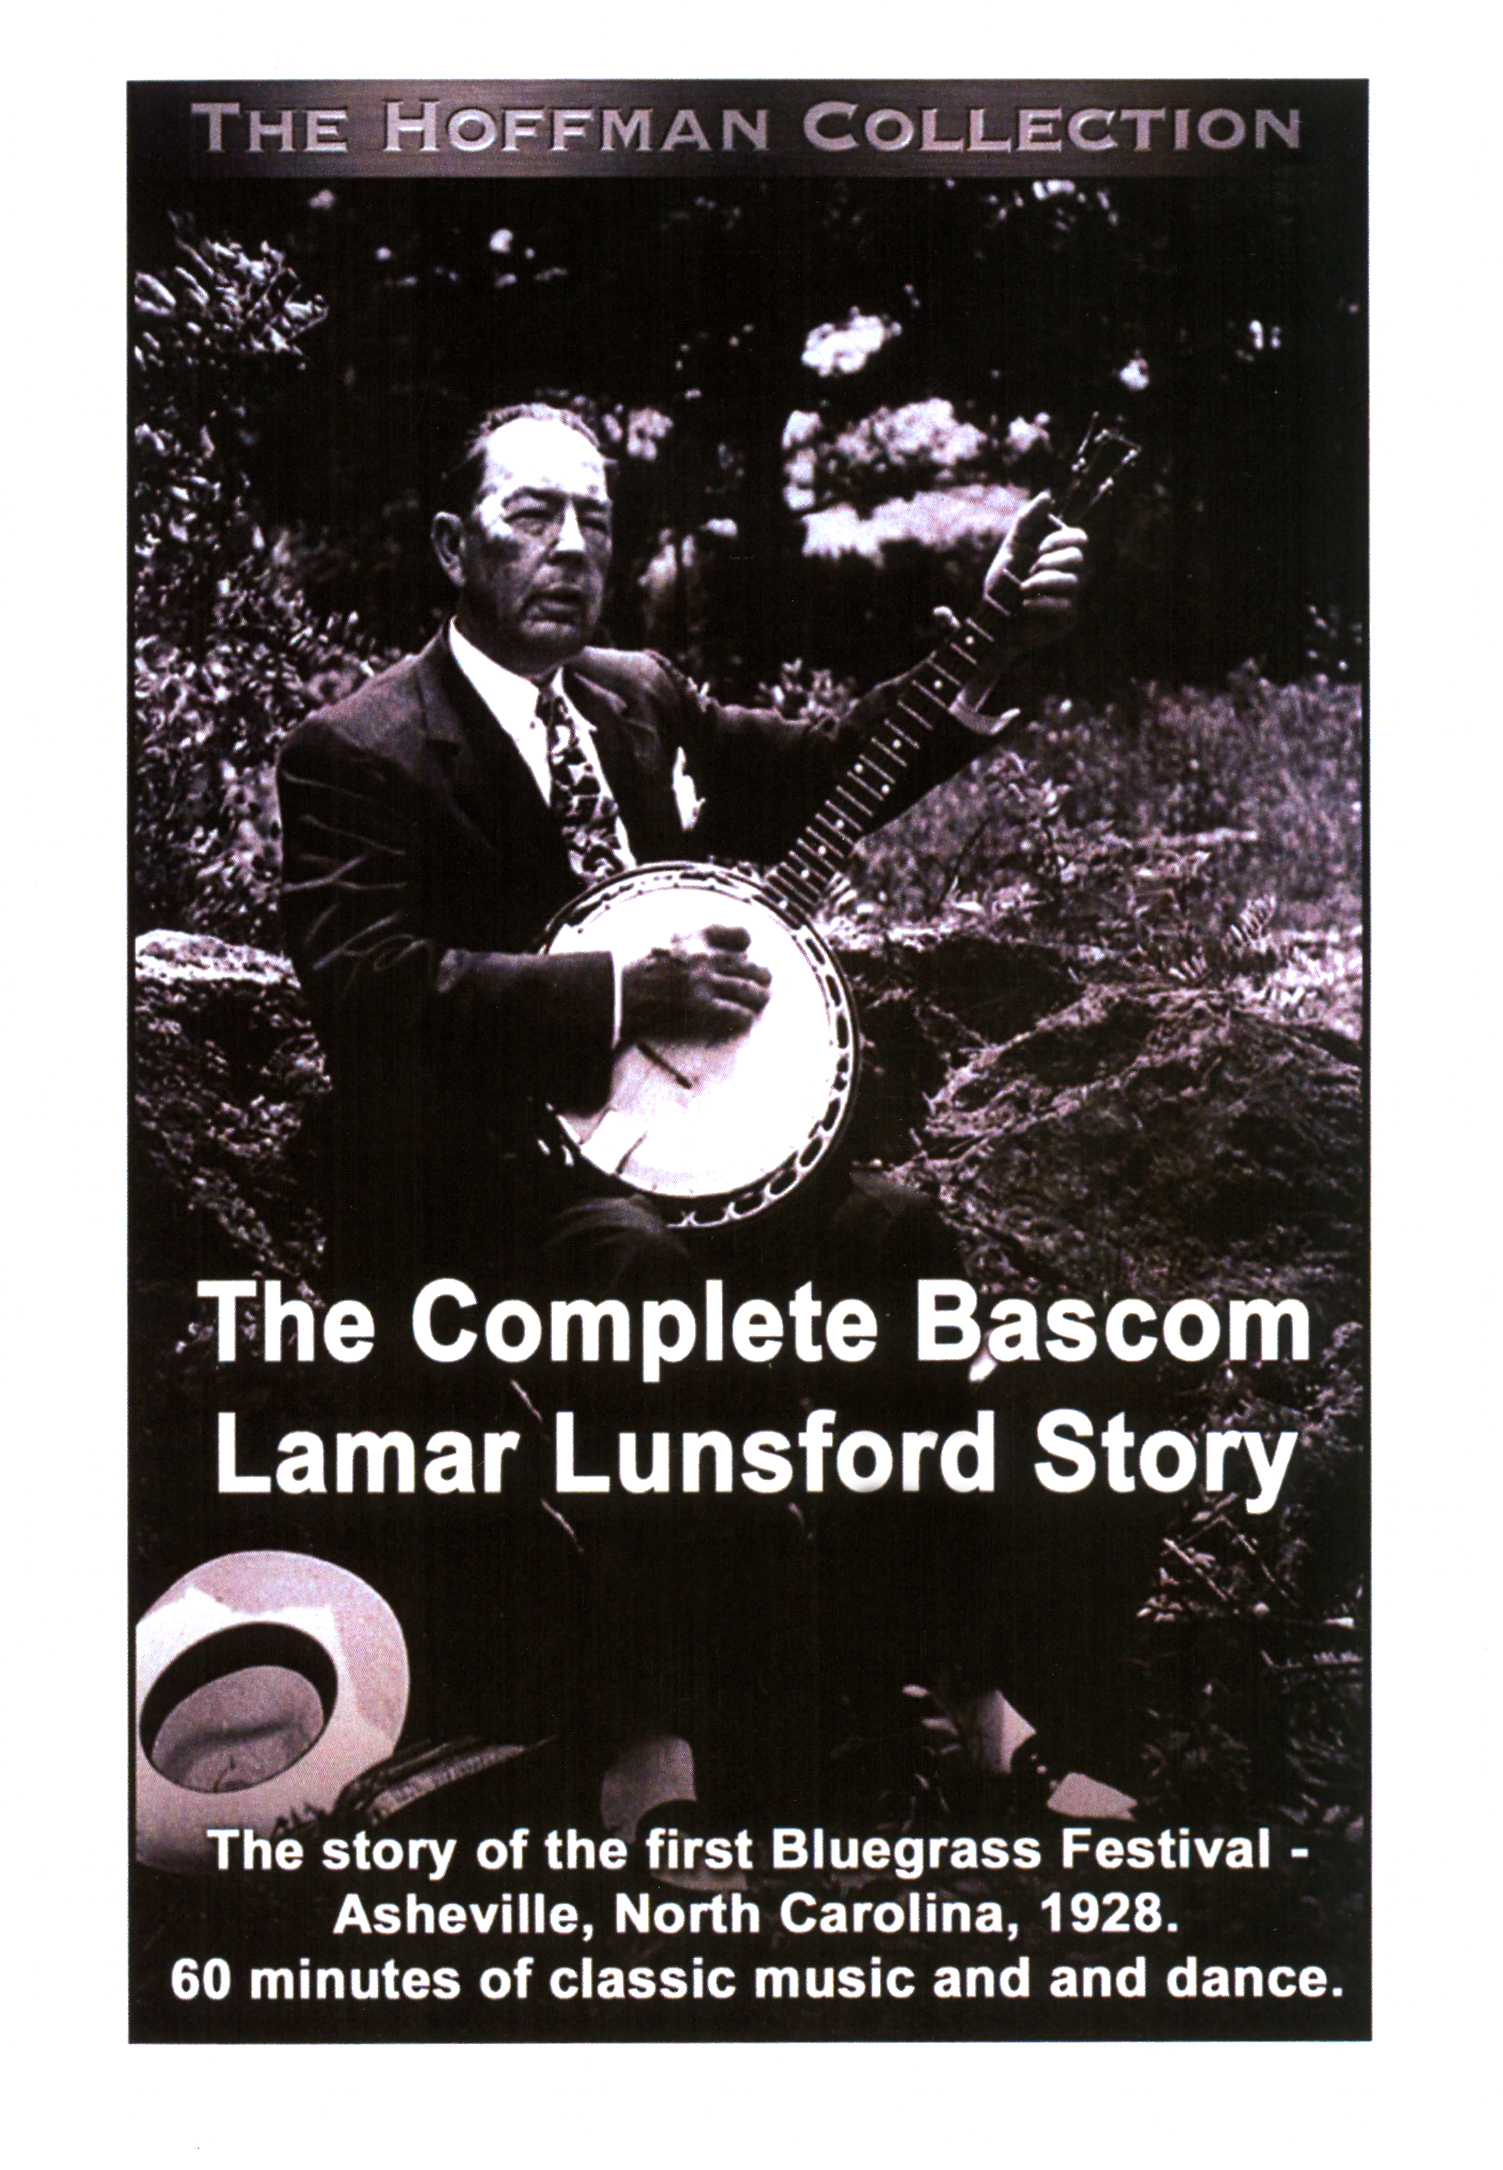 The Complete Bascom Lamar Lunsford Story